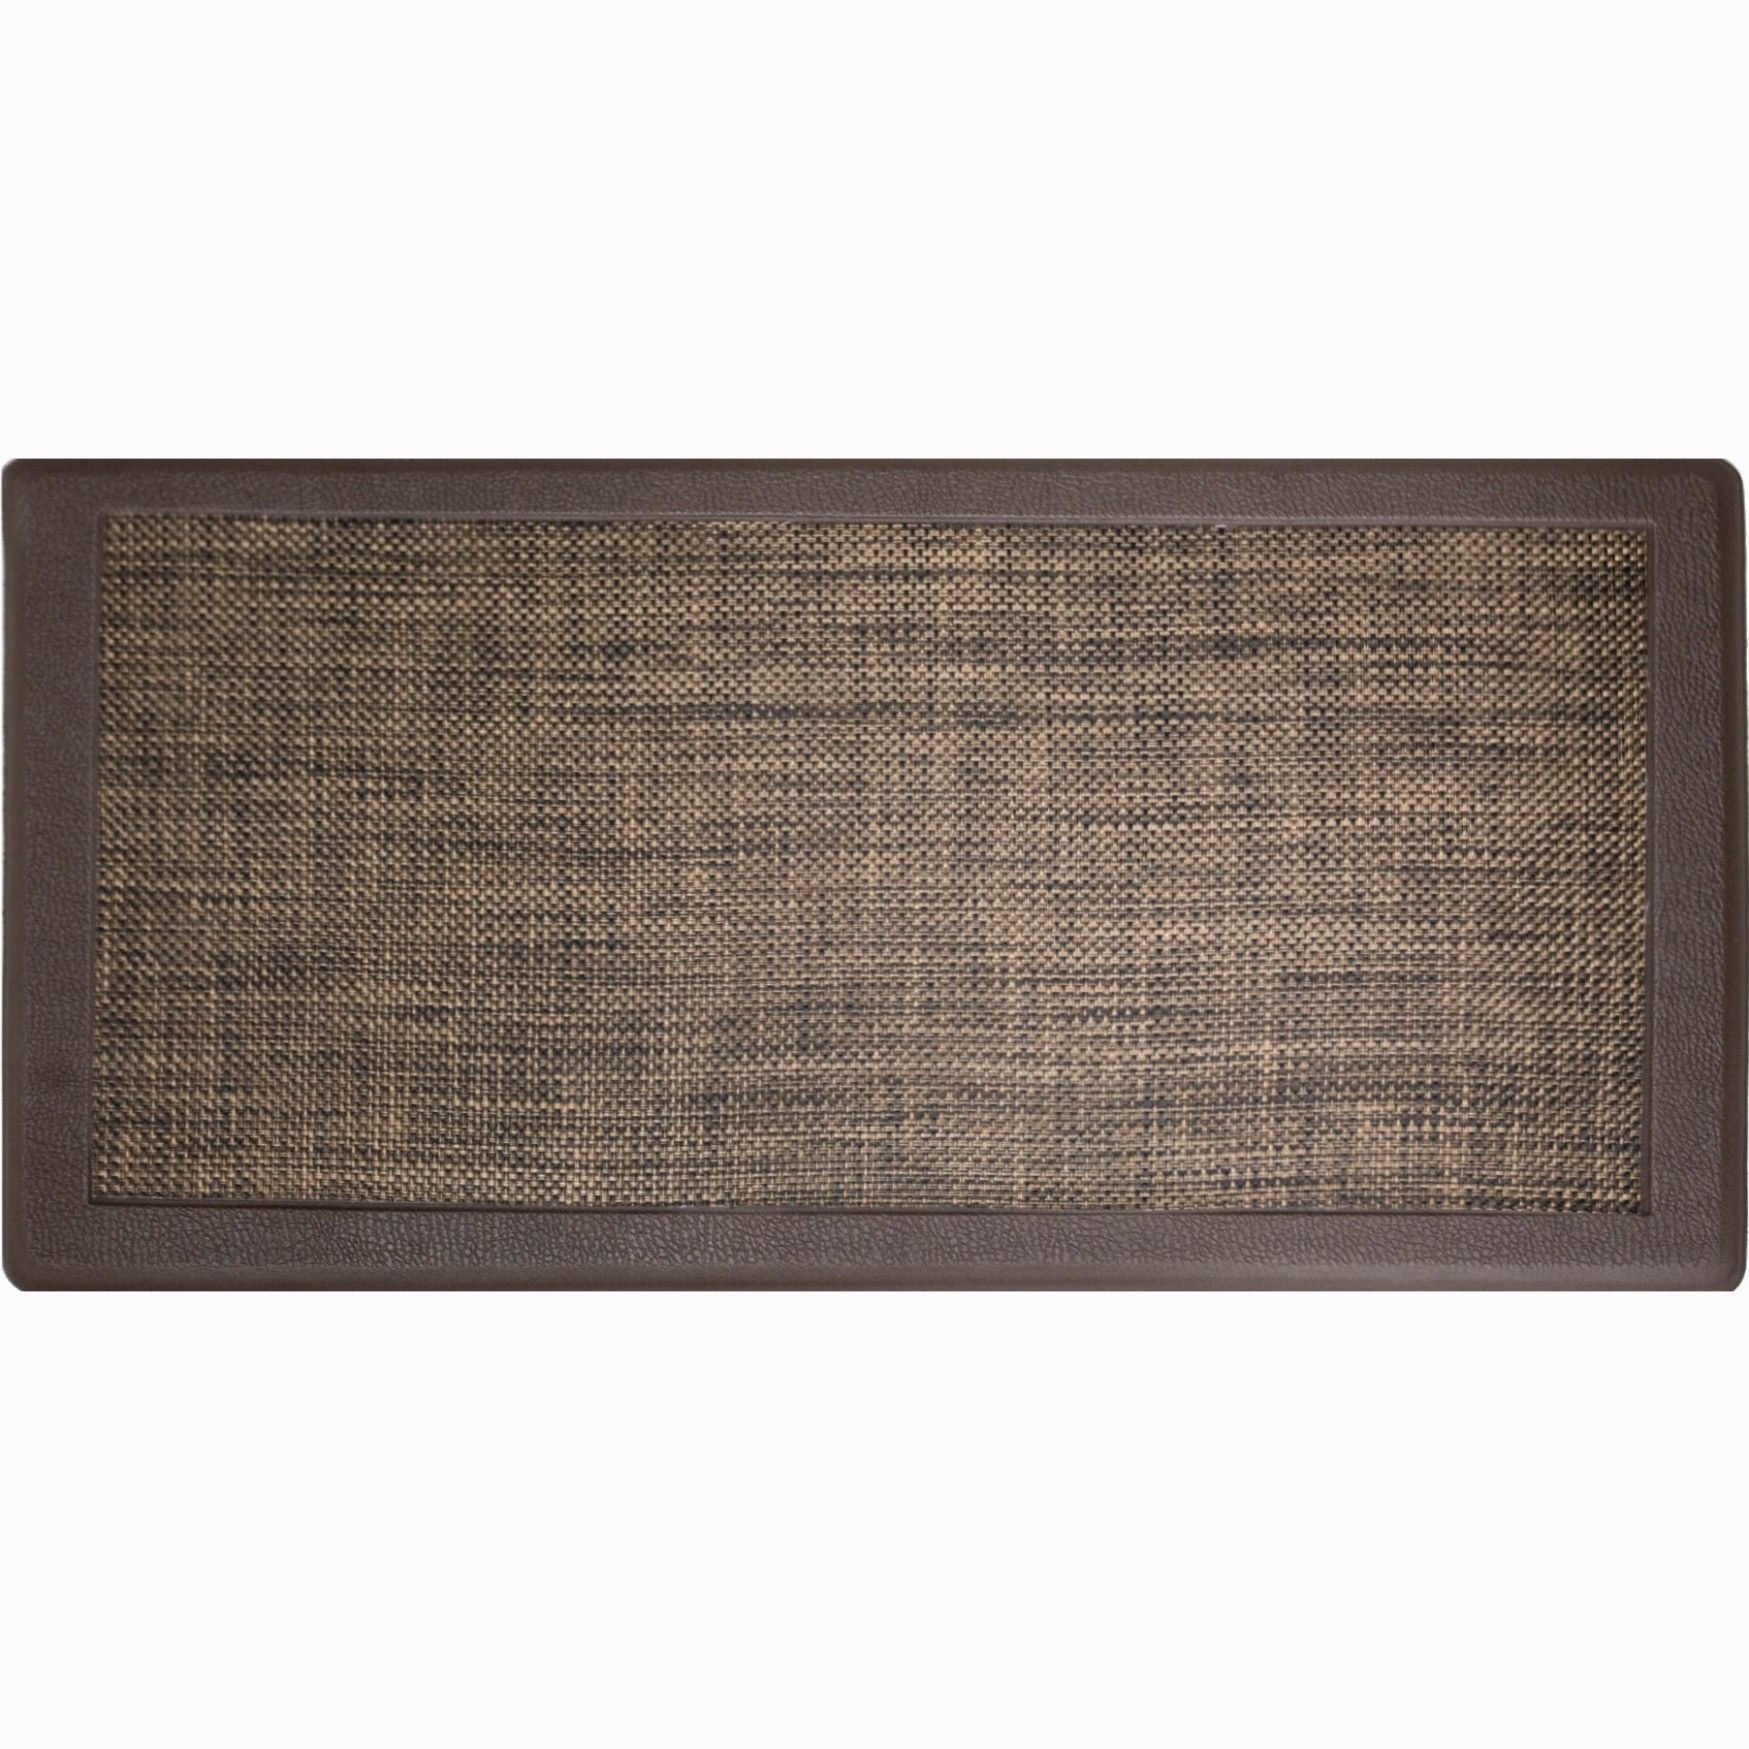 If You Re In Your Tension All Day Or For Assorted Hours A Day You Have To Accede Giving Your Anat In 2020 Anti Fatigue Kitchen Mats Stain Resistant Anti Fatigue Mat